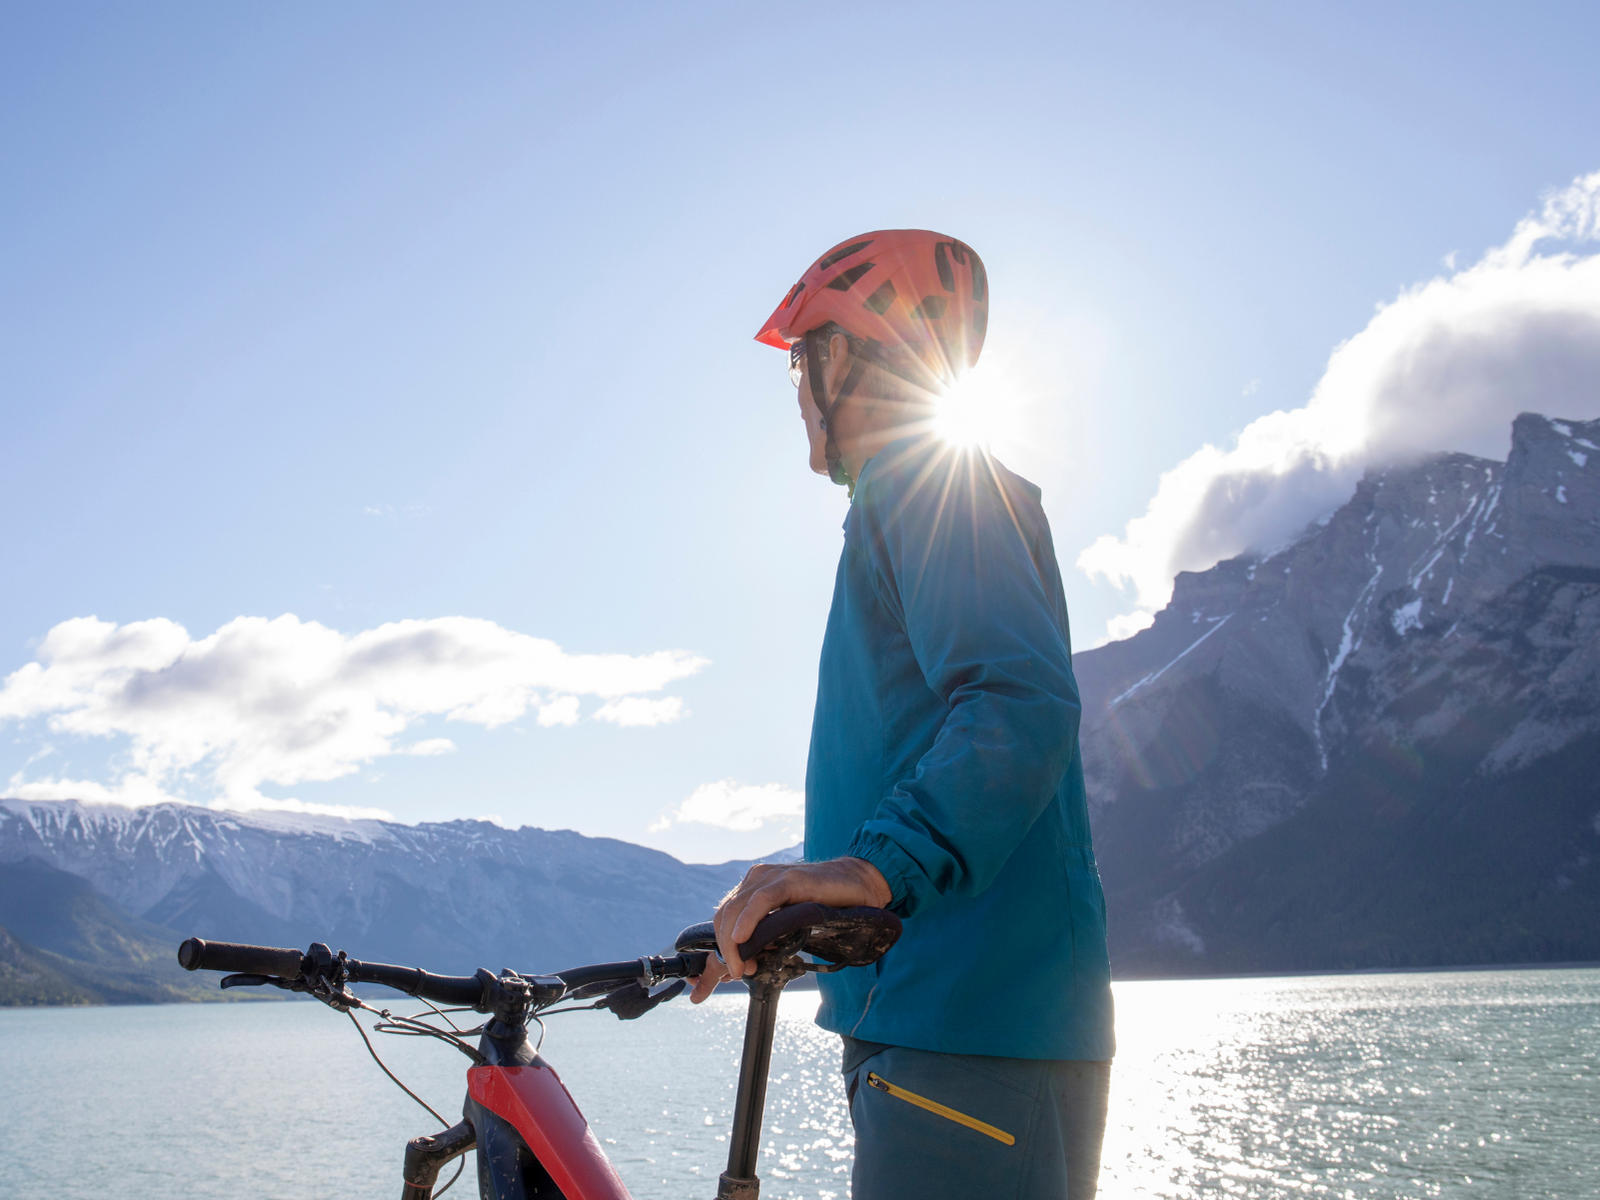 Man with bicycle in front of lake with mountains